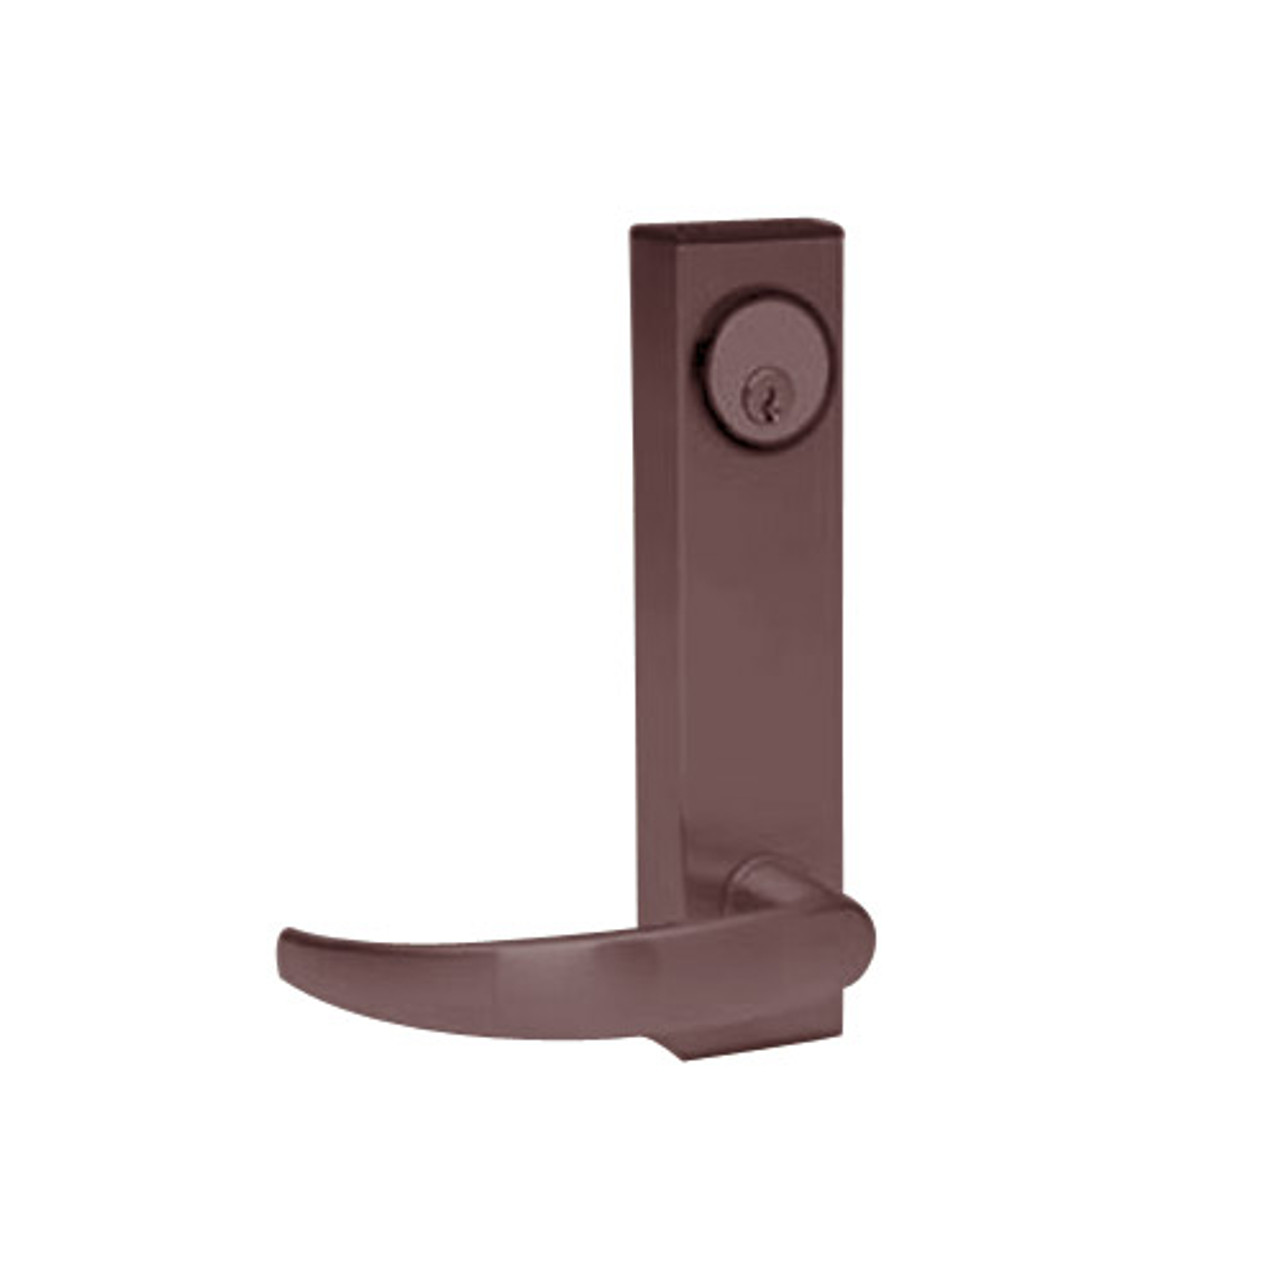 3080-01-0-37-US10B Adams Rite Standard Entry Trim with Curve Lever in Oil Rubbed Bronze Finish